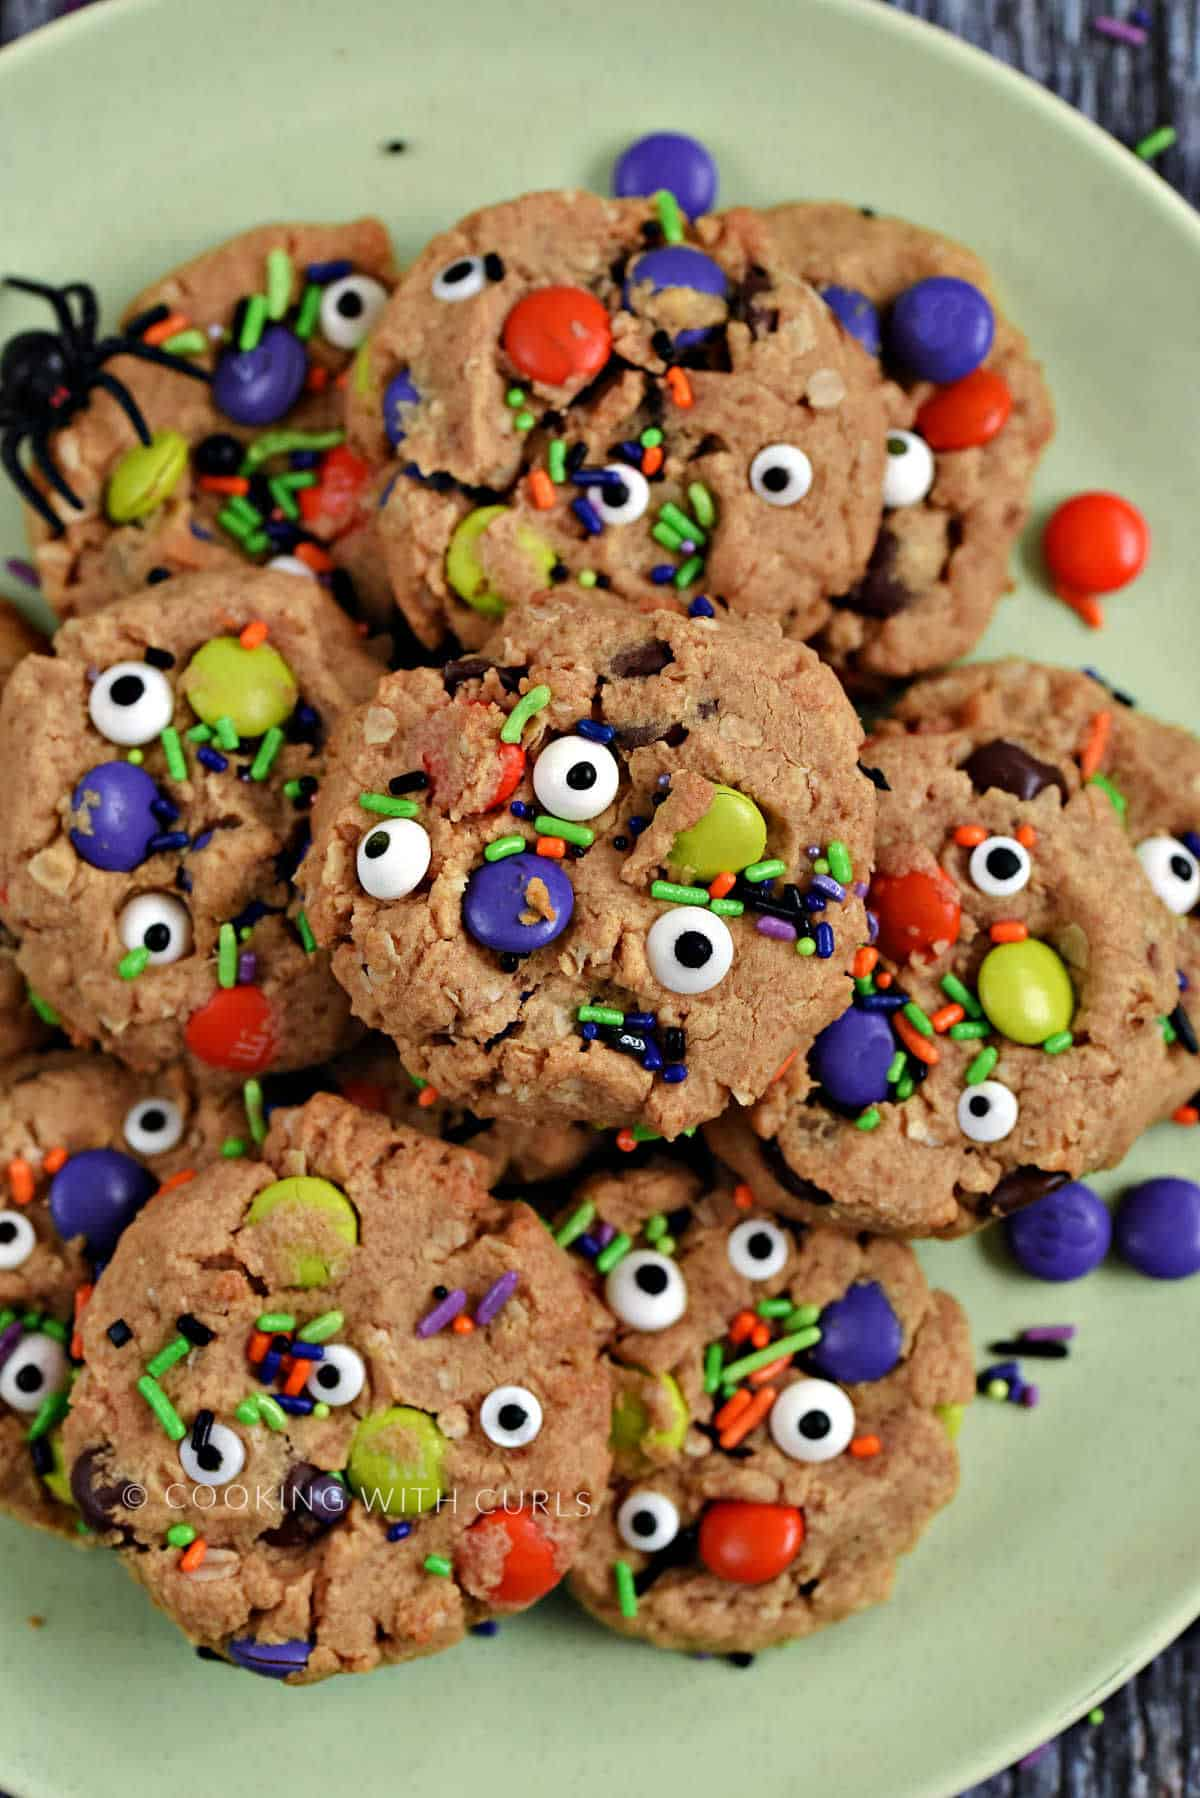 Cookies topped with candy eyes, M&M's, and colorful sprinkles piled up on a green plate.